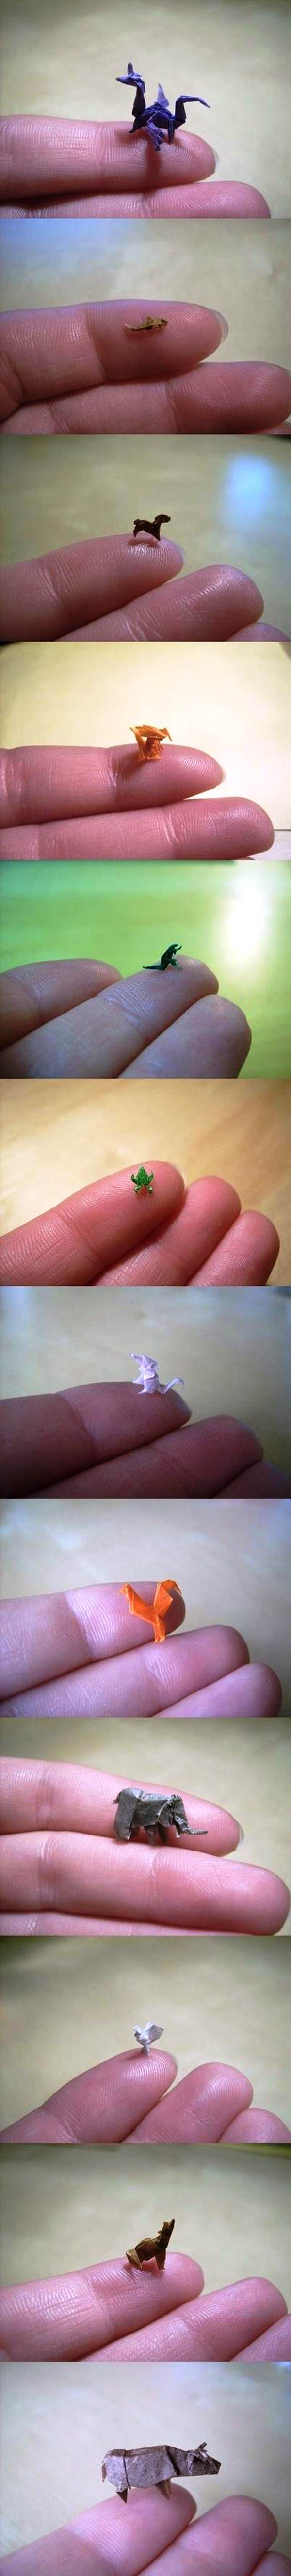 best-viral-pictures-week-5-origami